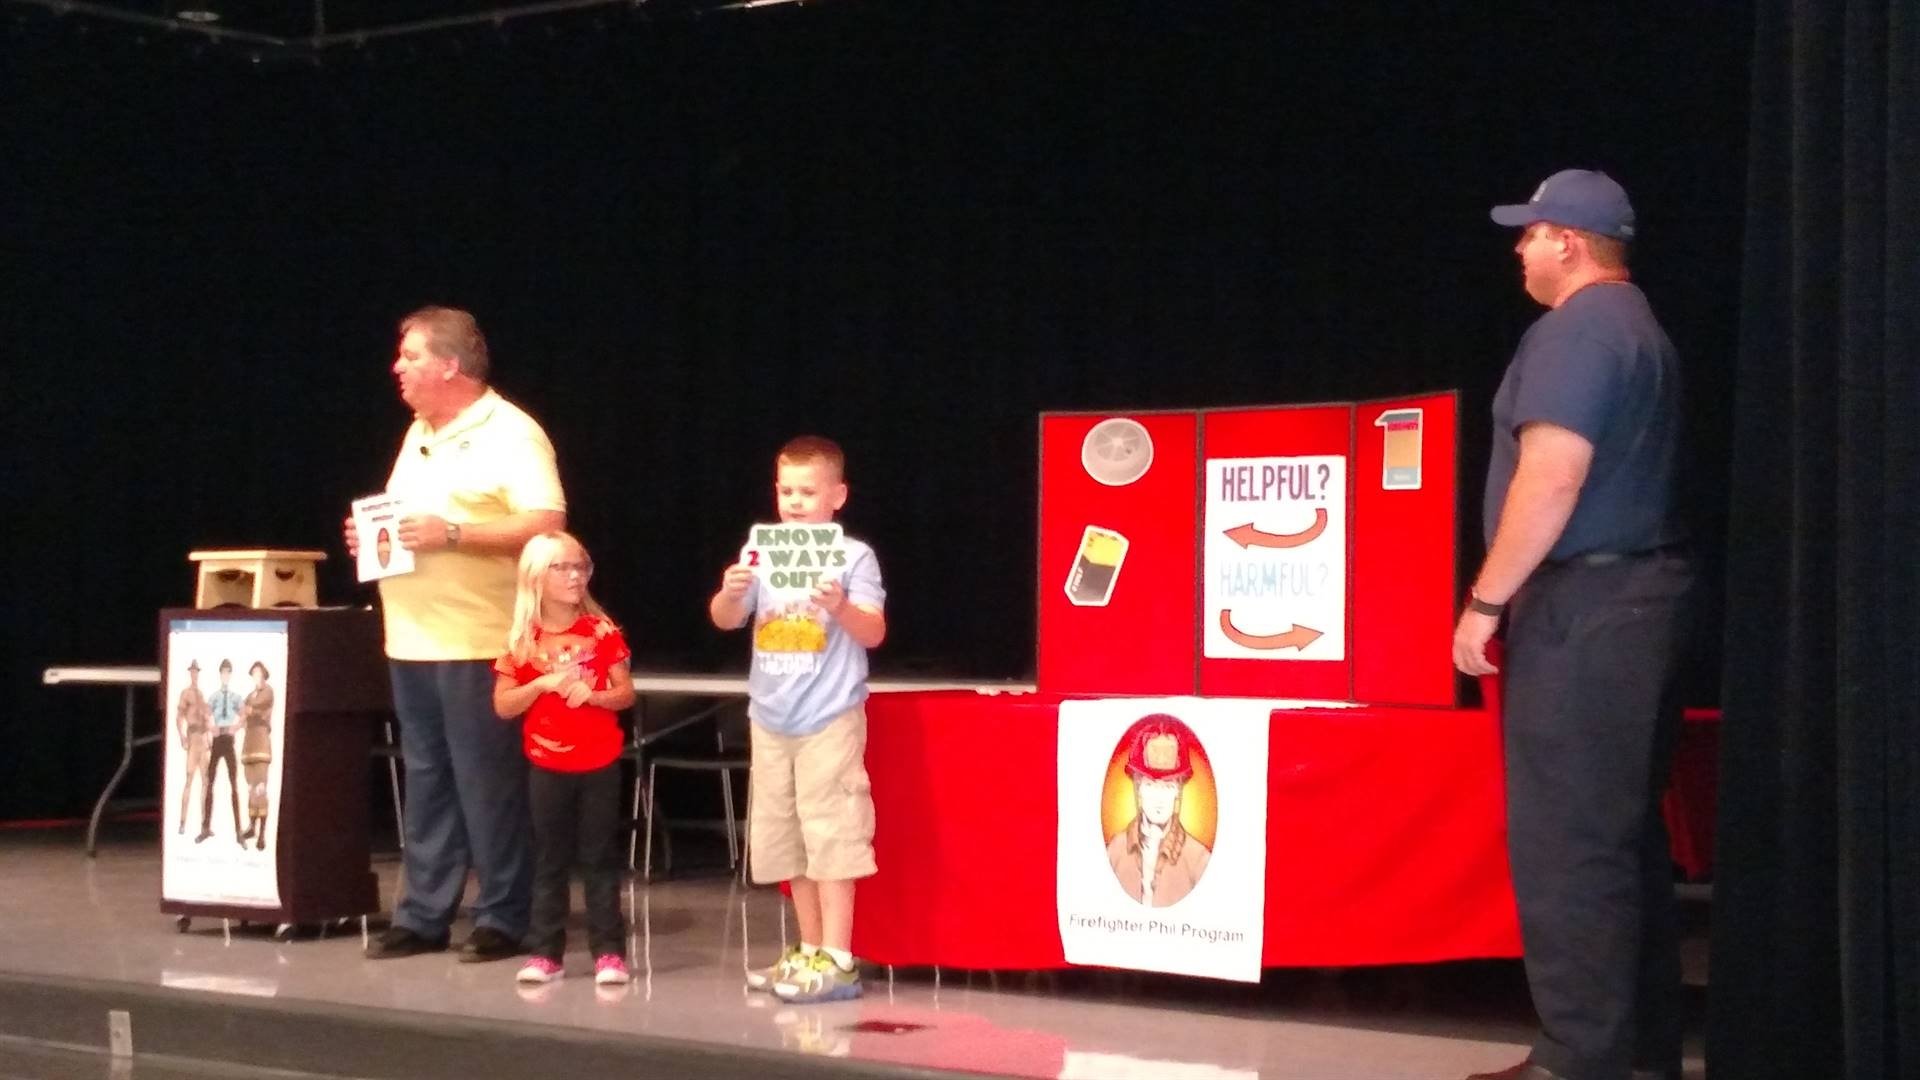 Fire Safety Presentation at PCES